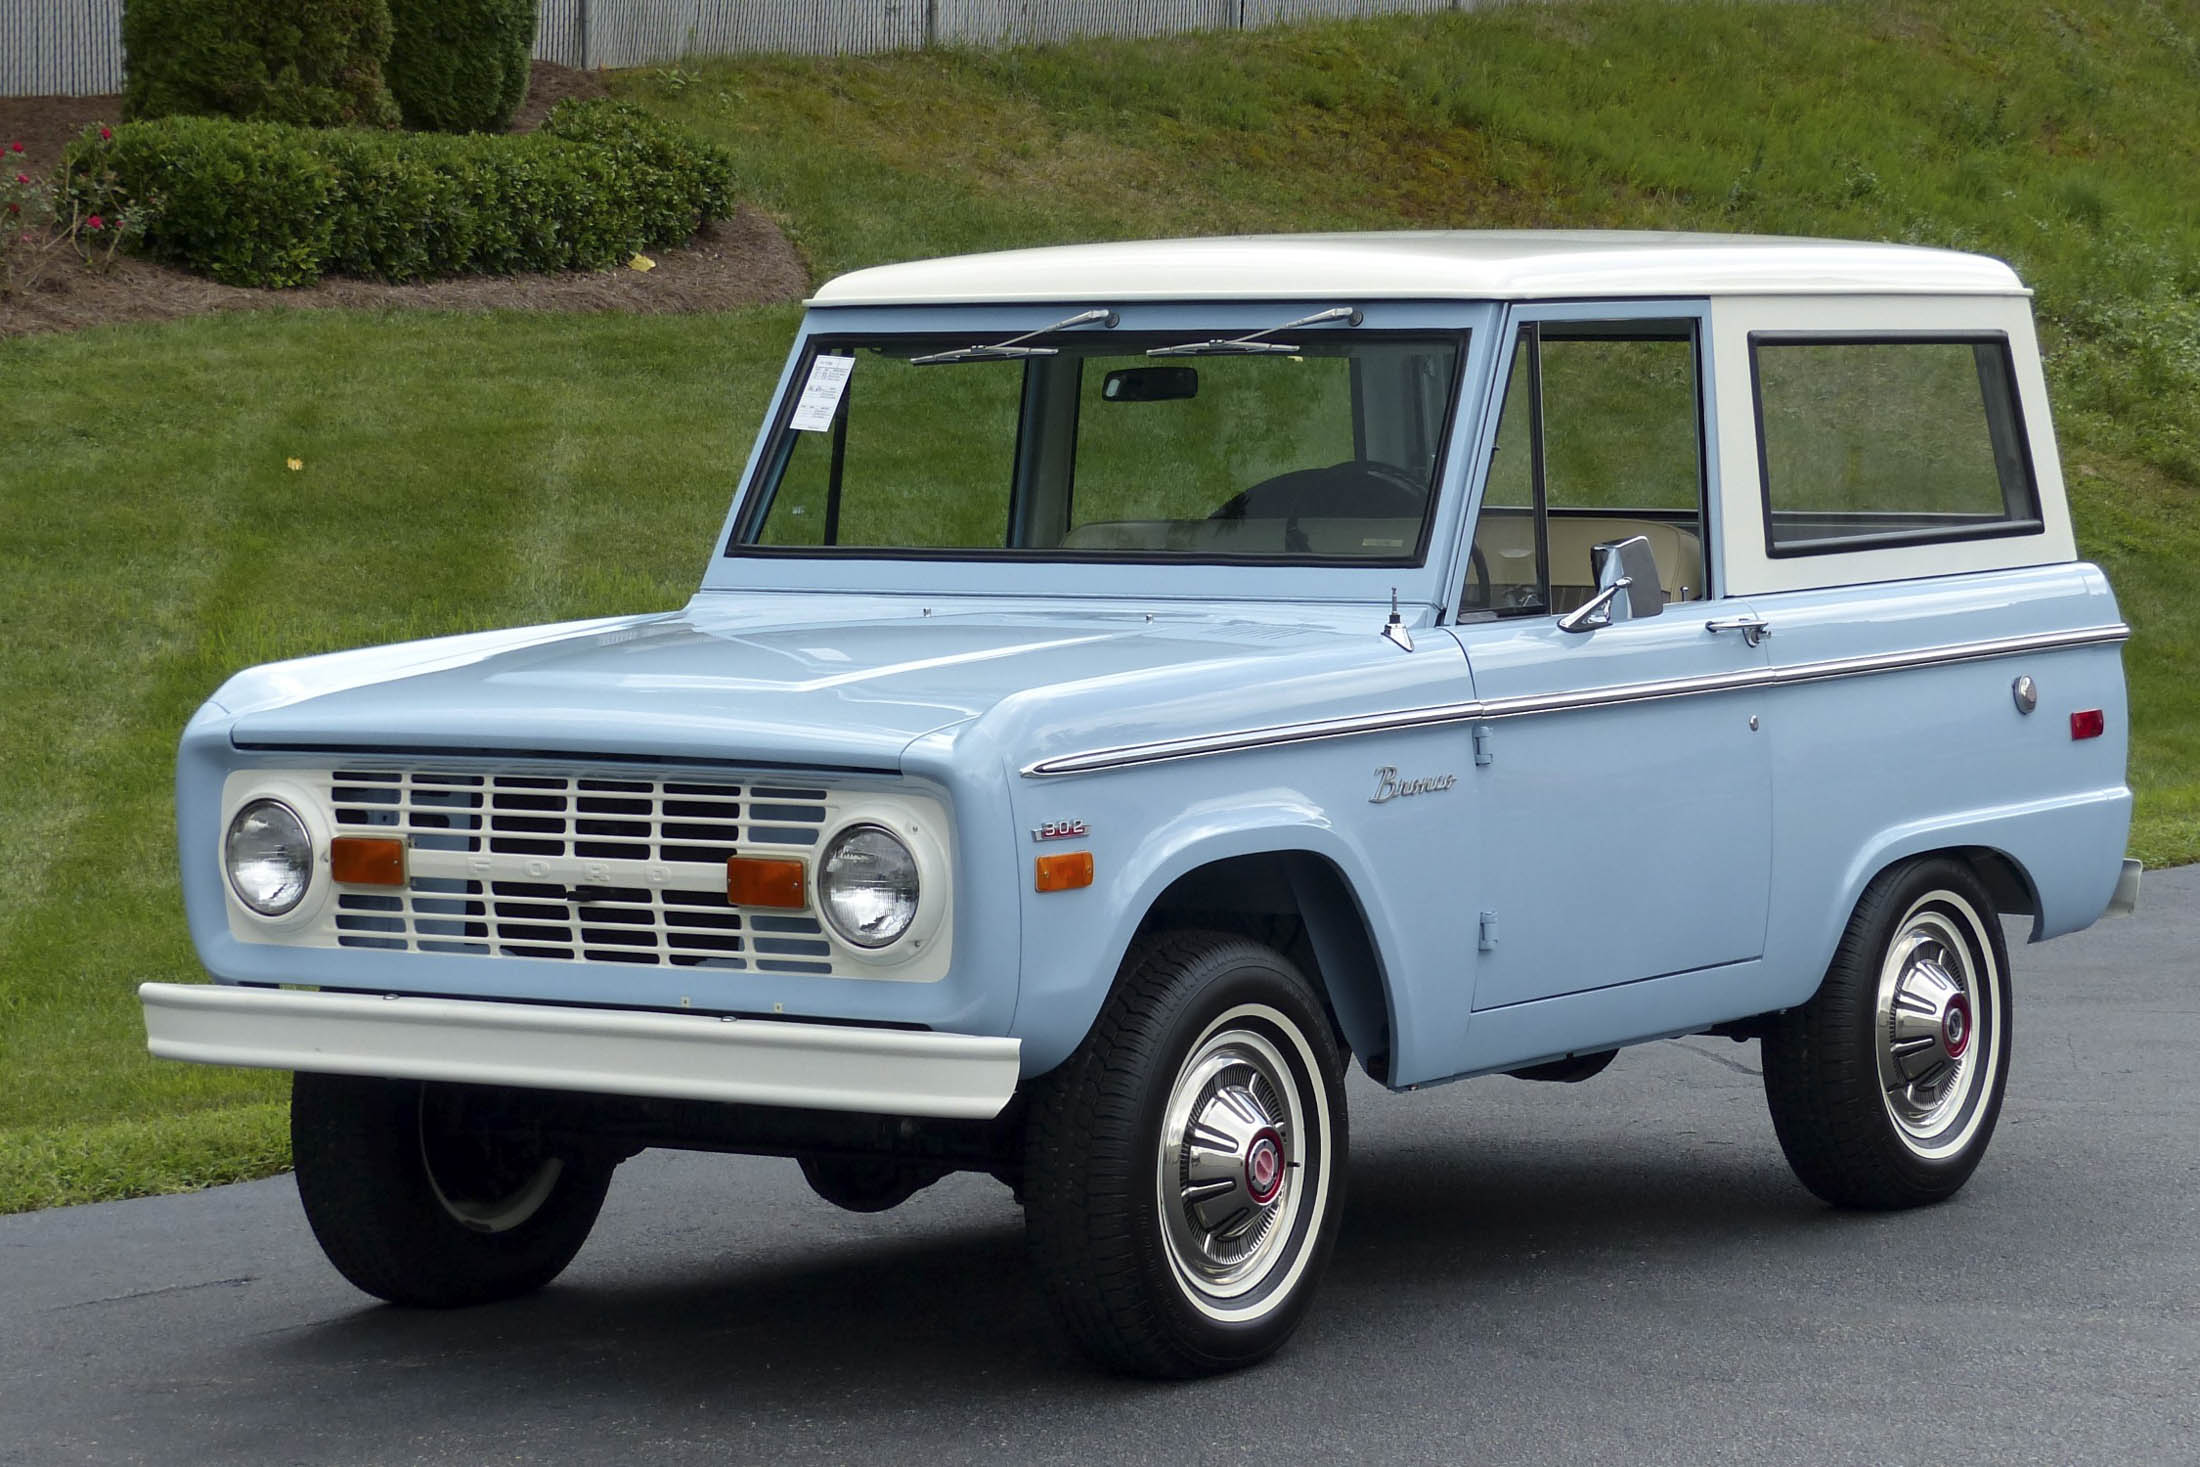 Vintage Ford Broncos Are More Expensive Than Ever - Bloomberg